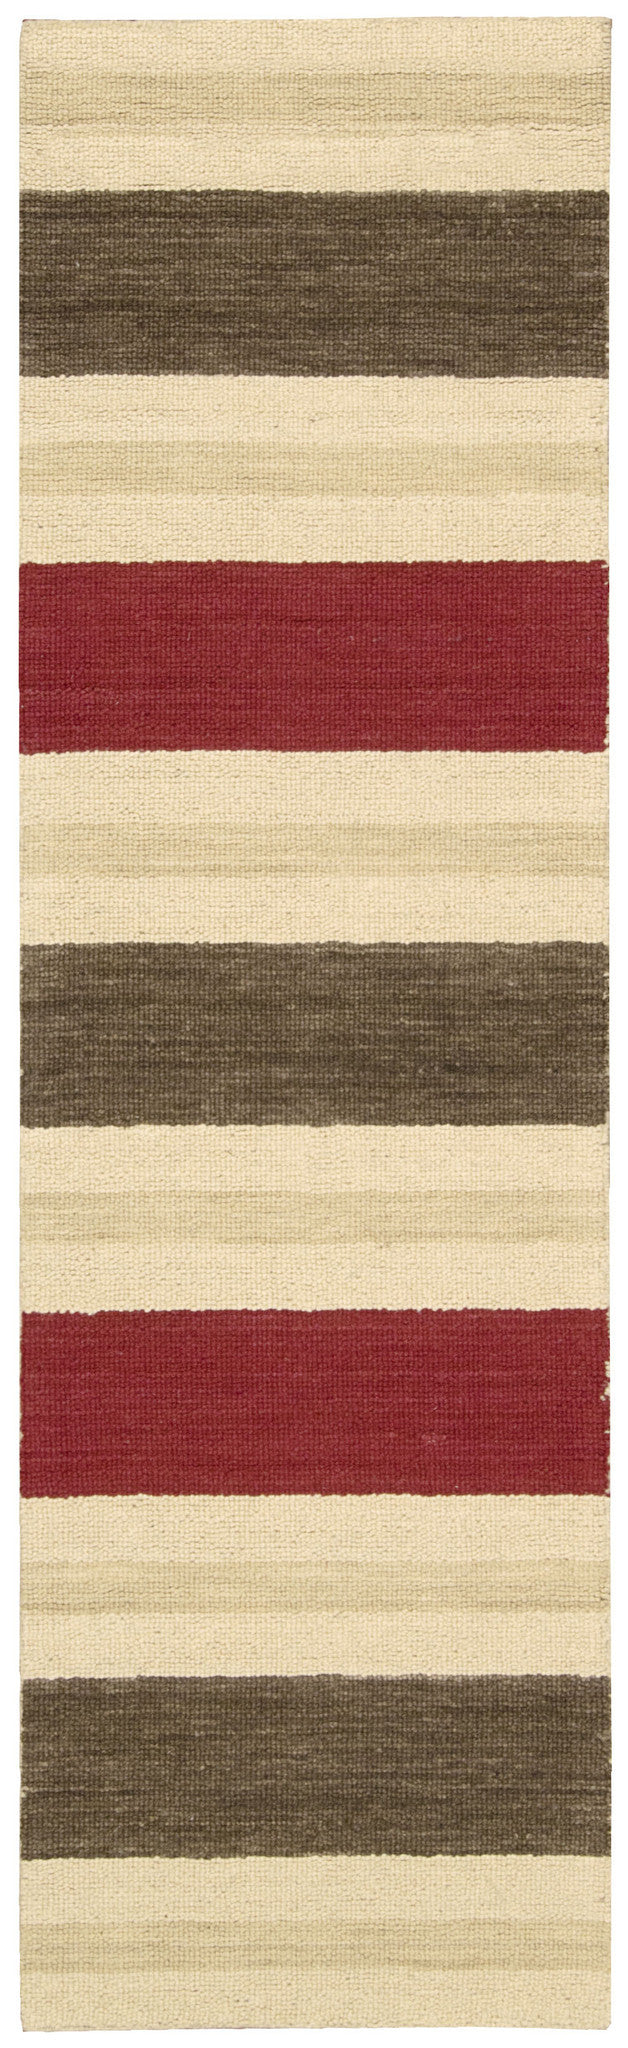 Barclay Butera Oxford Savannah  Area Rug By Nourison OXFD3 SAVAN (Runner) | BOGO USA